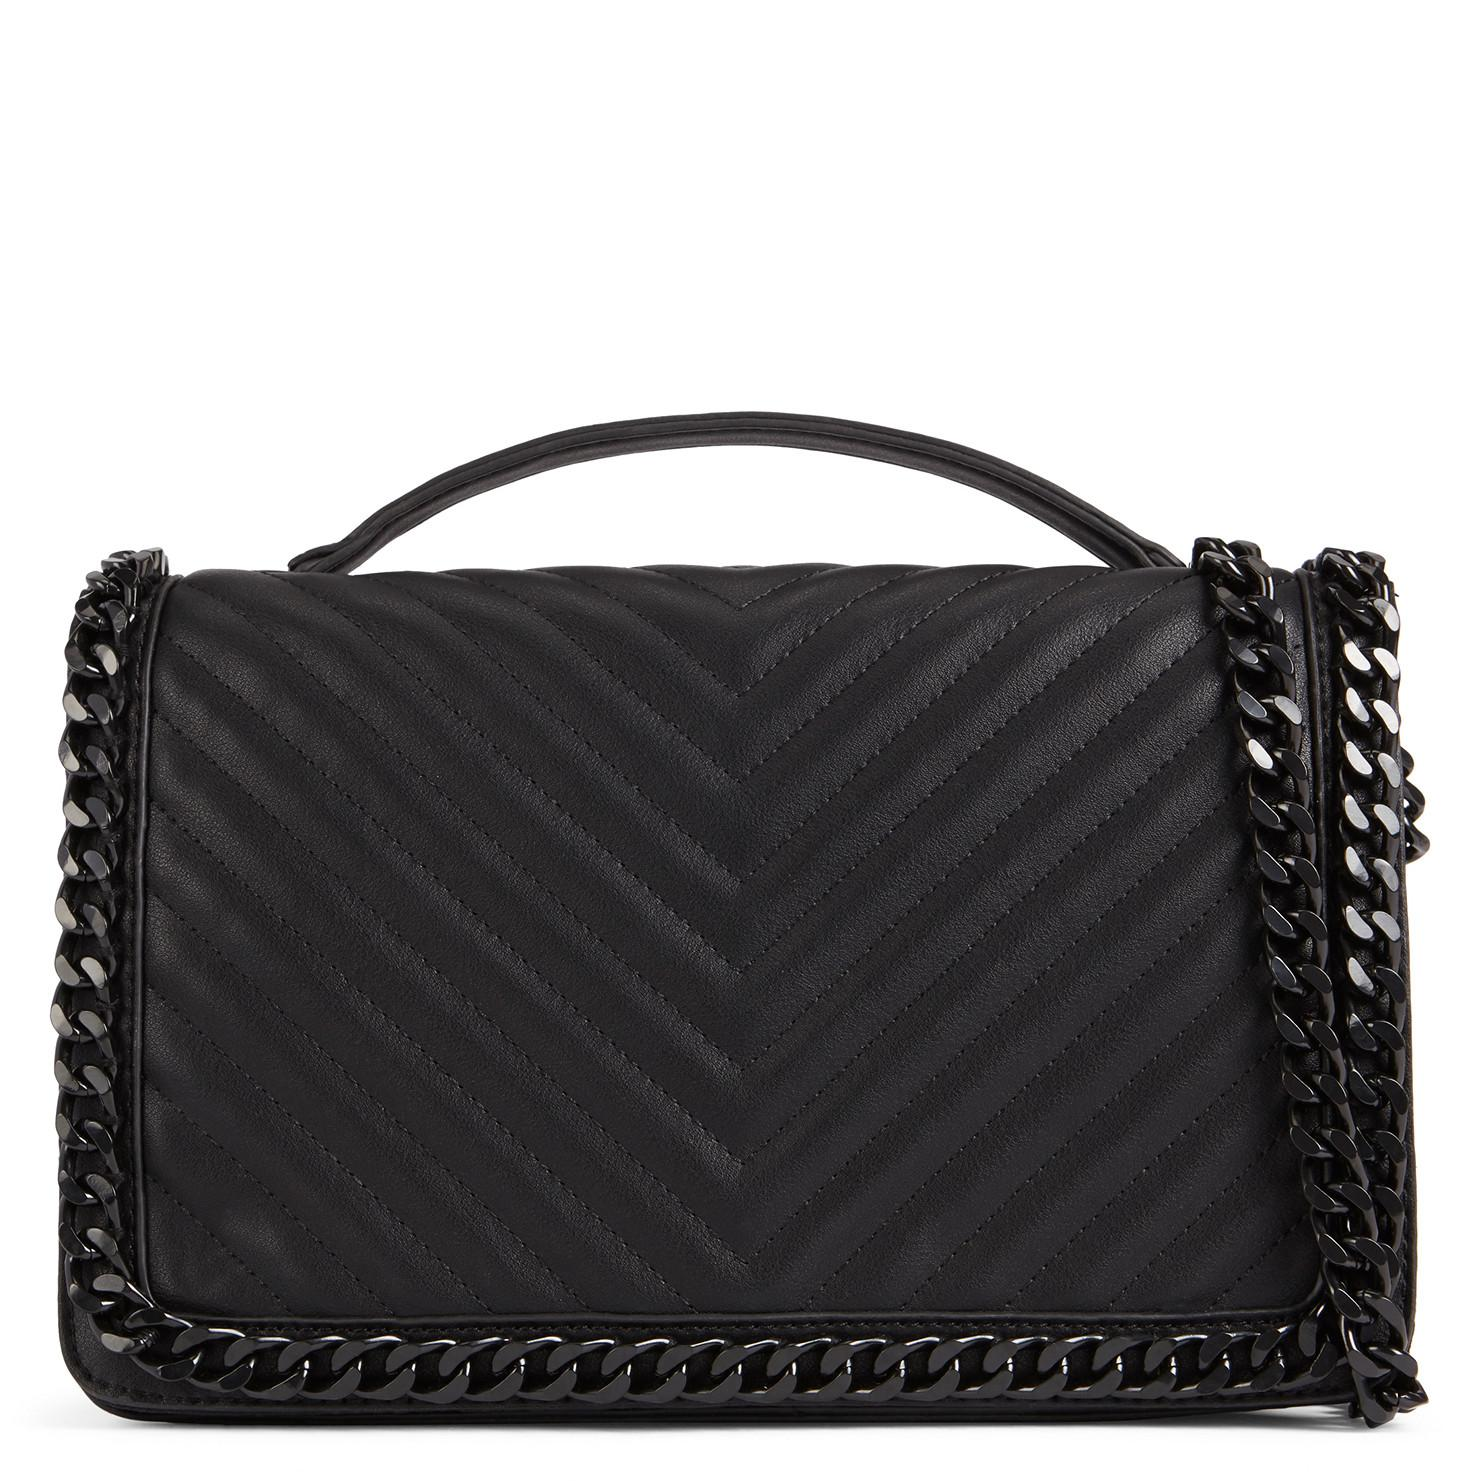 Aldo Greenwald Quilted Chain Handbag In Black Lyst